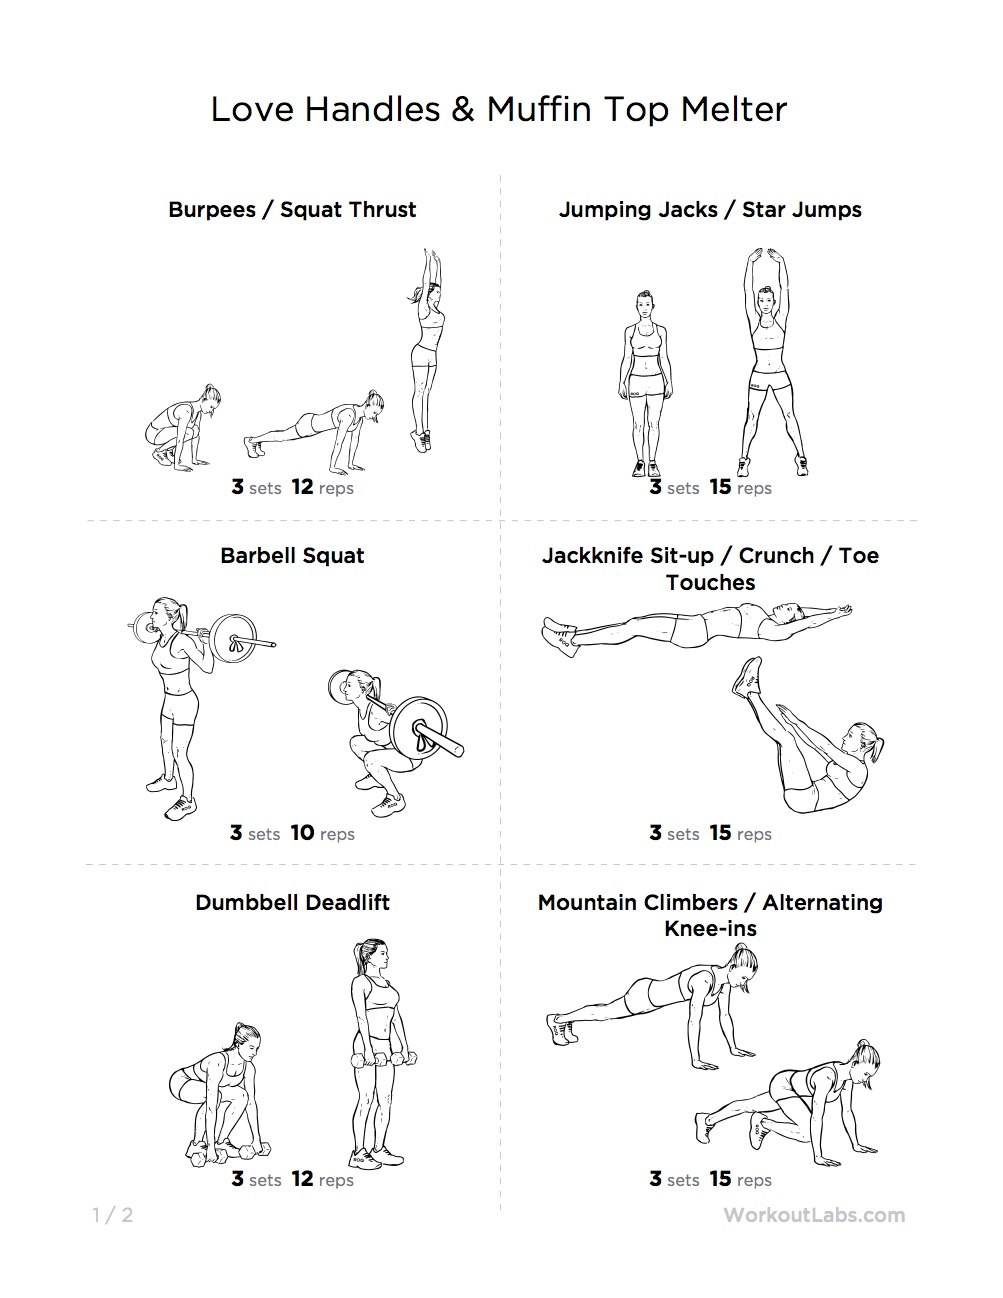 Side Fat Workout Love Handles With Weights